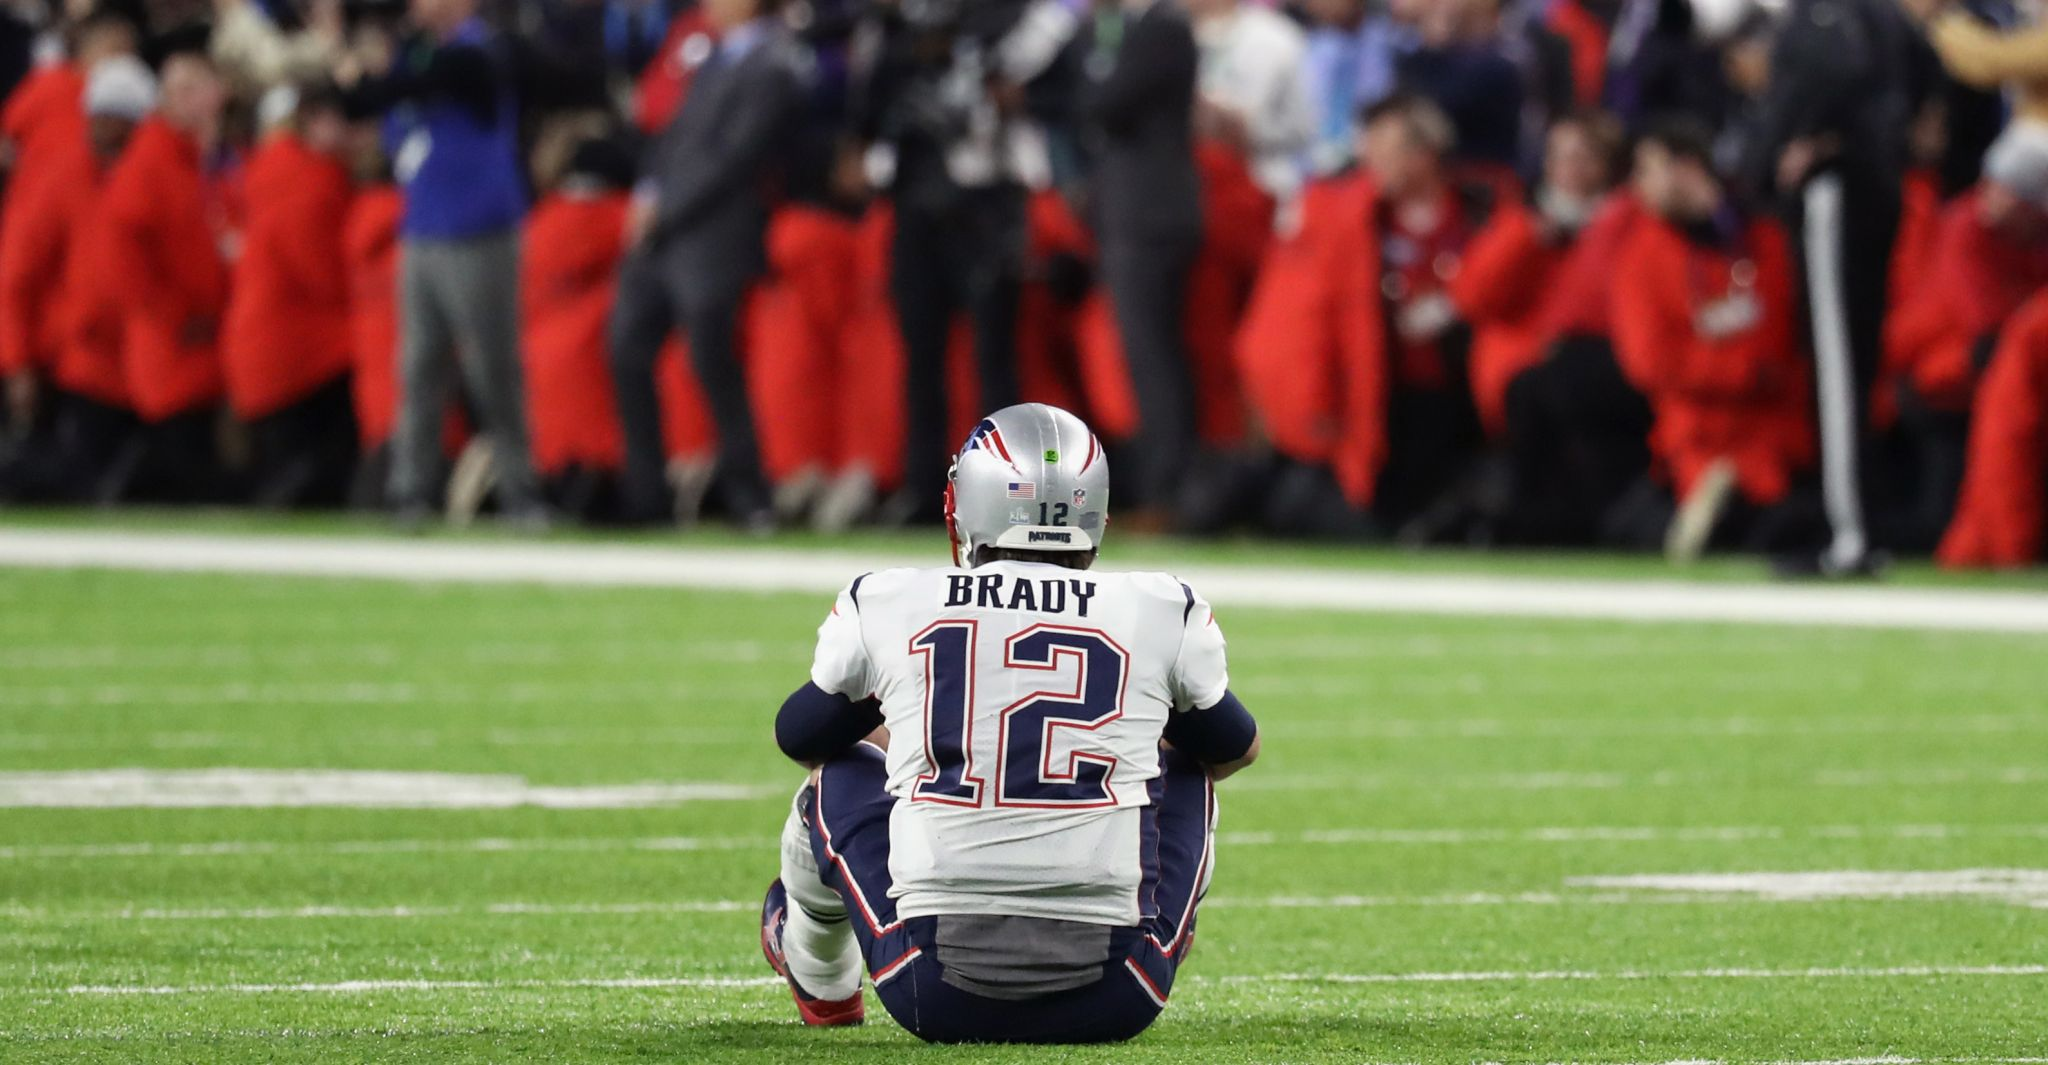 5 Patriots takeaways from Super Bowl LII - SFChronicle.com 790305ef4